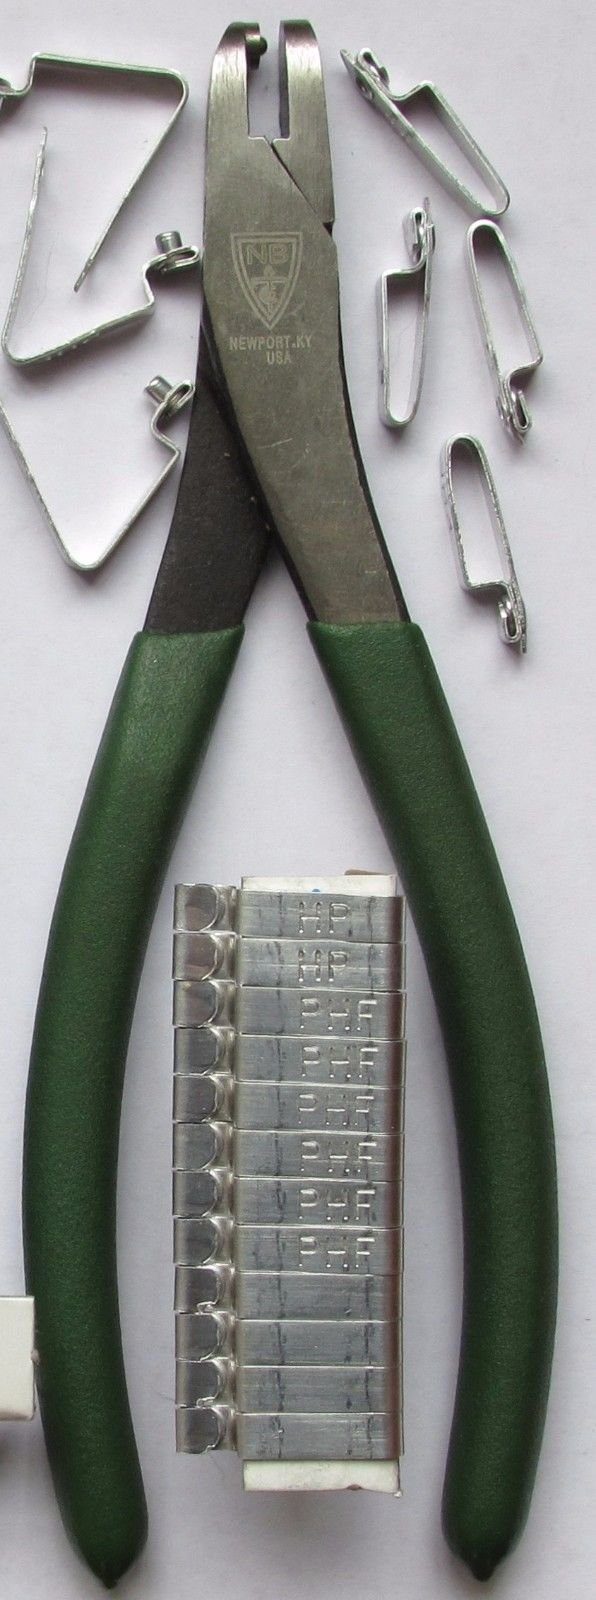 USA Zip Wing Band Pliers for Al. Bands Chicken Pheasant Poultry Peacock Bird by New Unbrand